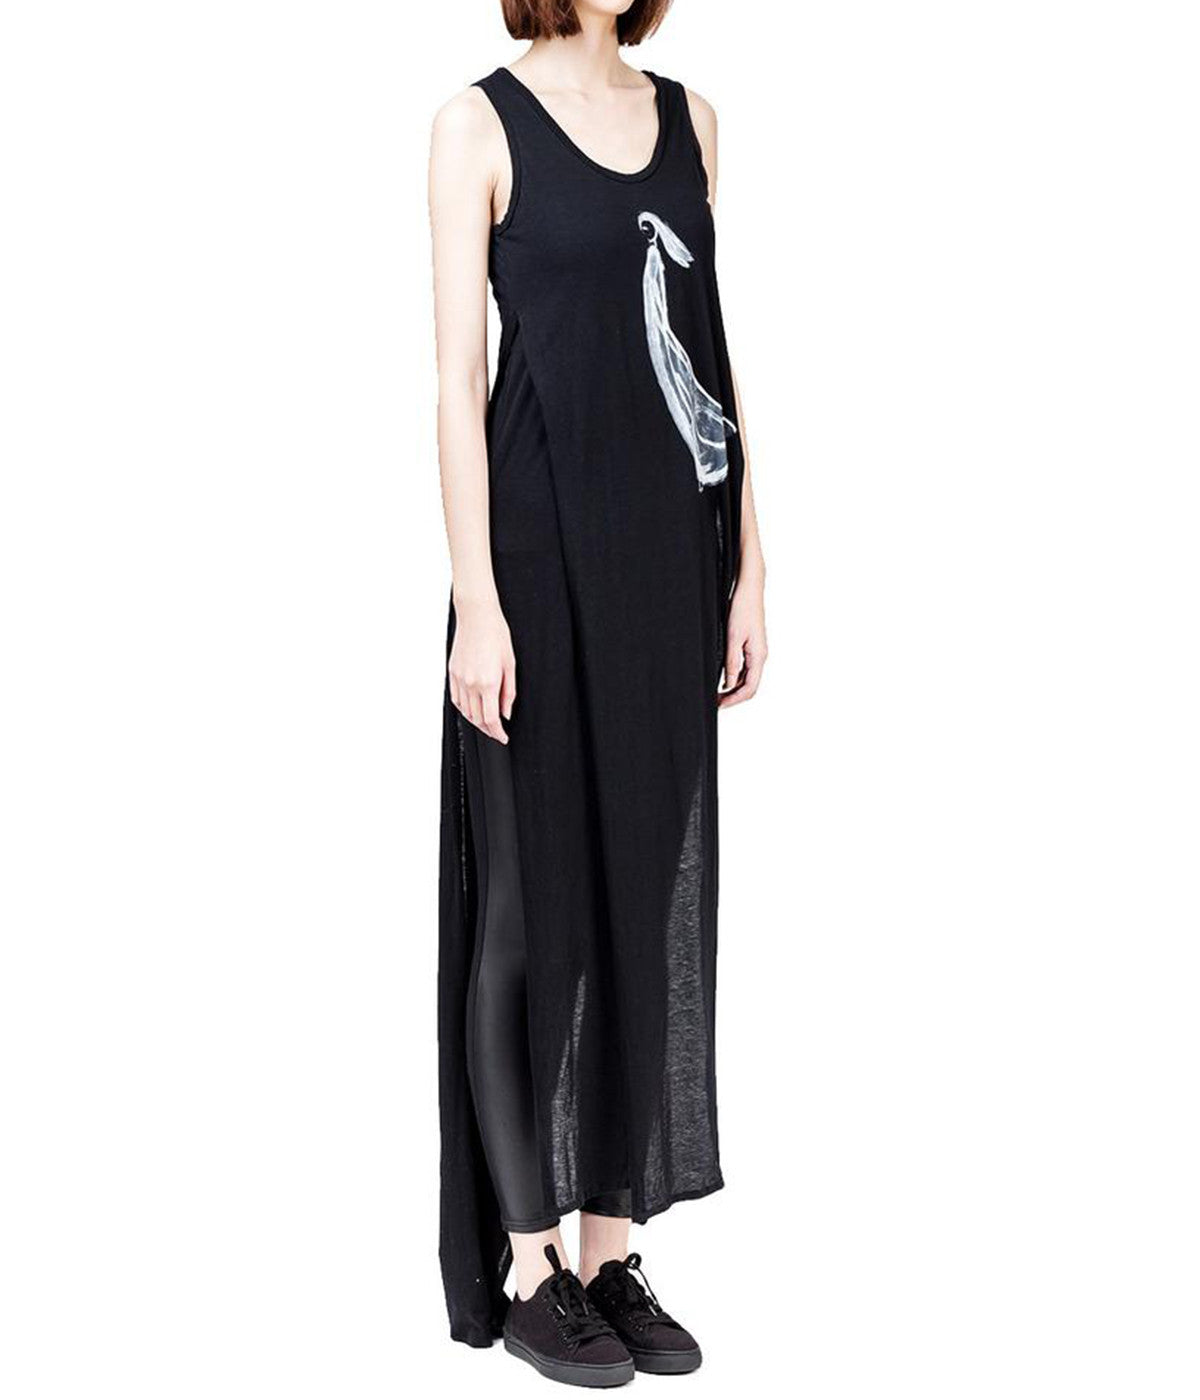 Elongated Dual Layer Cotton Jersey Tank Top